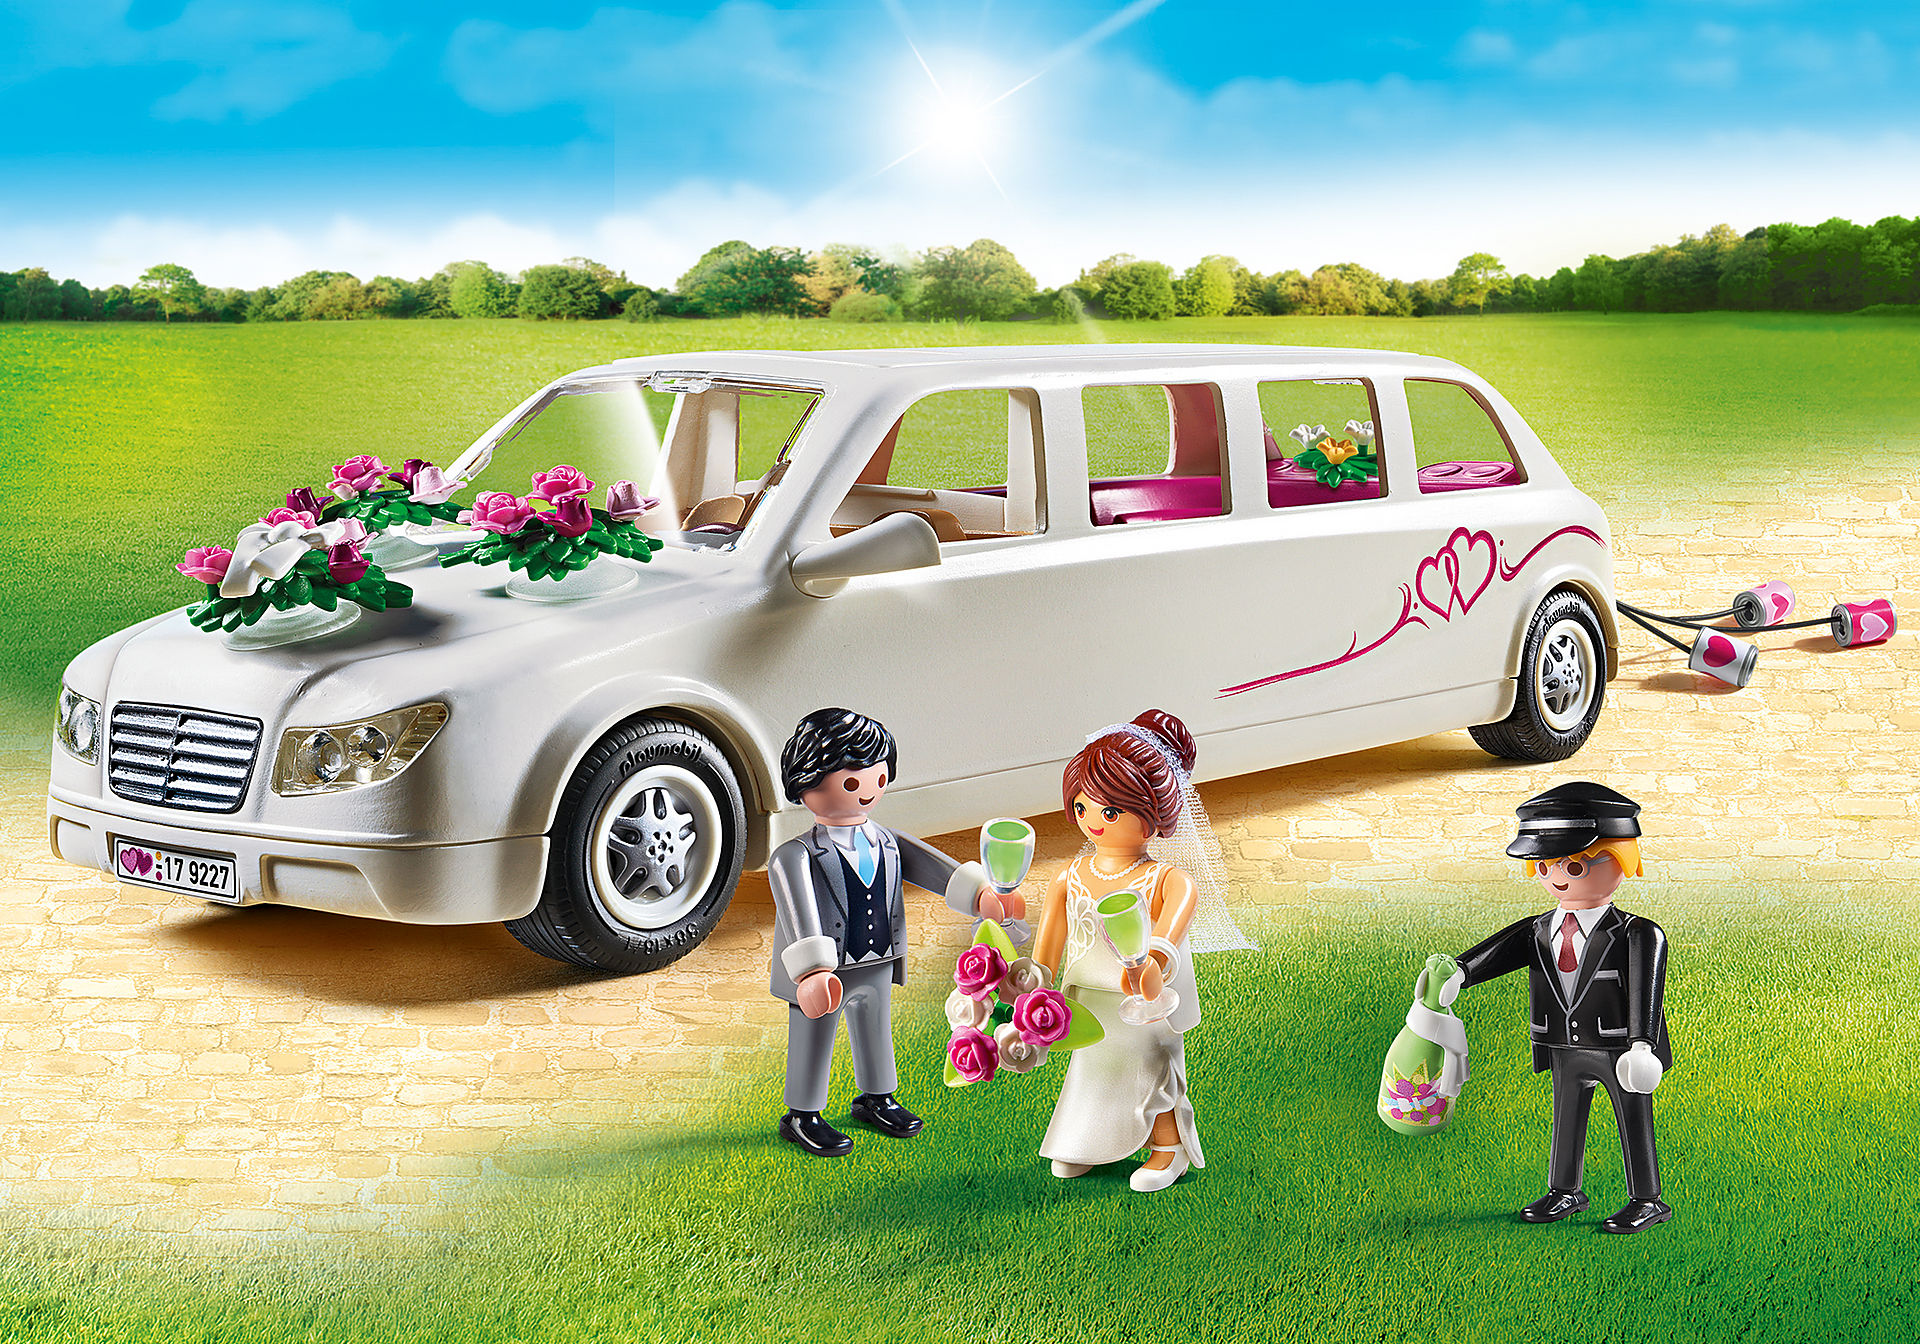 9227 Wedding Limo zoom image1